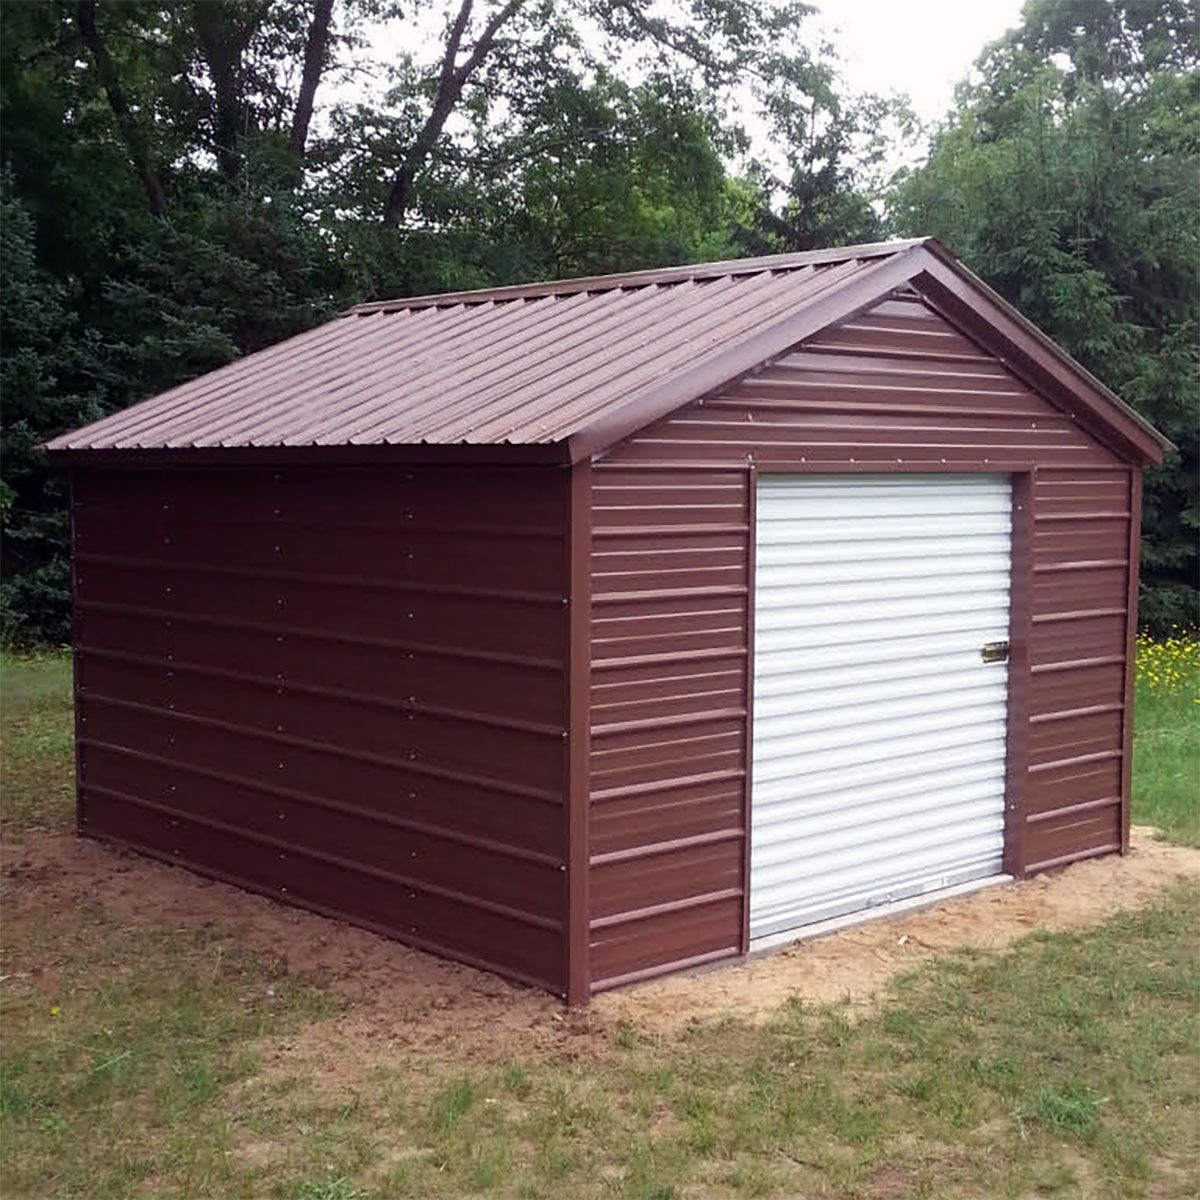 10x12x8 Metal Shed Installed In Michigan.Visit Www.midweststeelcarports.com  For More Information